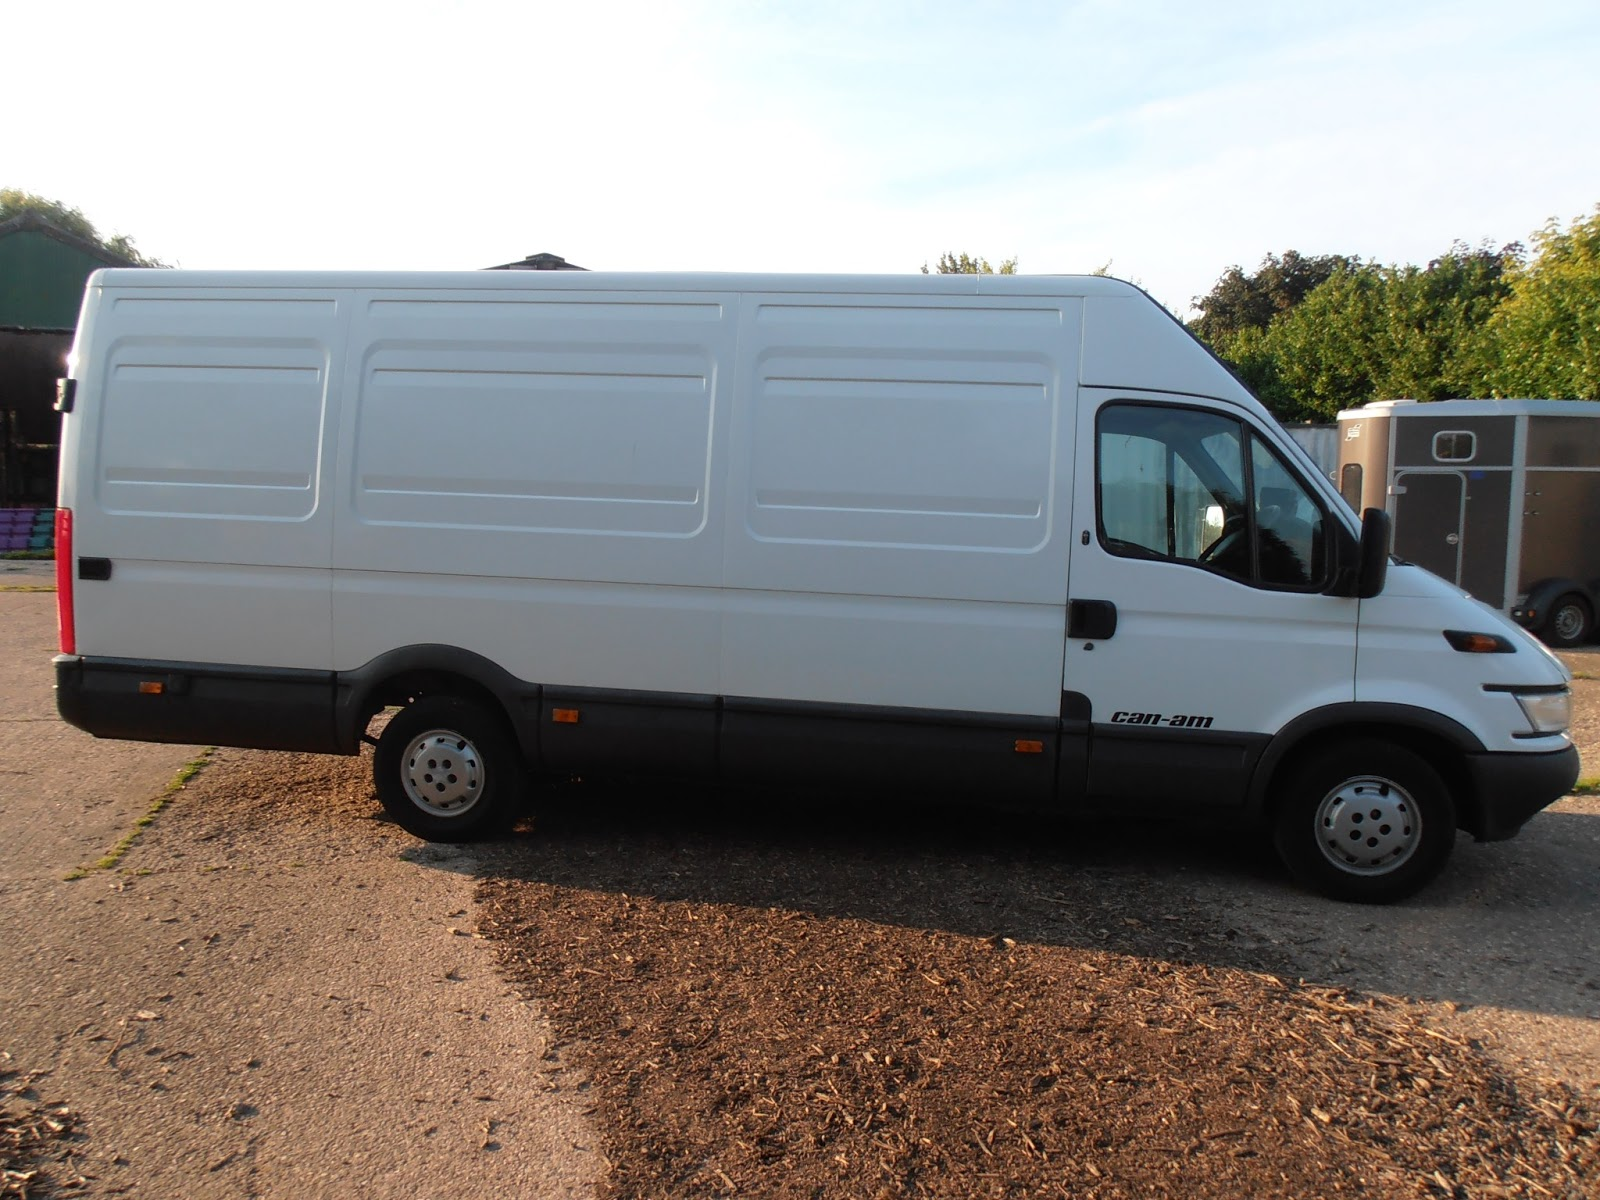 Rgb 750 Motor Club Edward Scotney Sale Iveco Daily Lwb